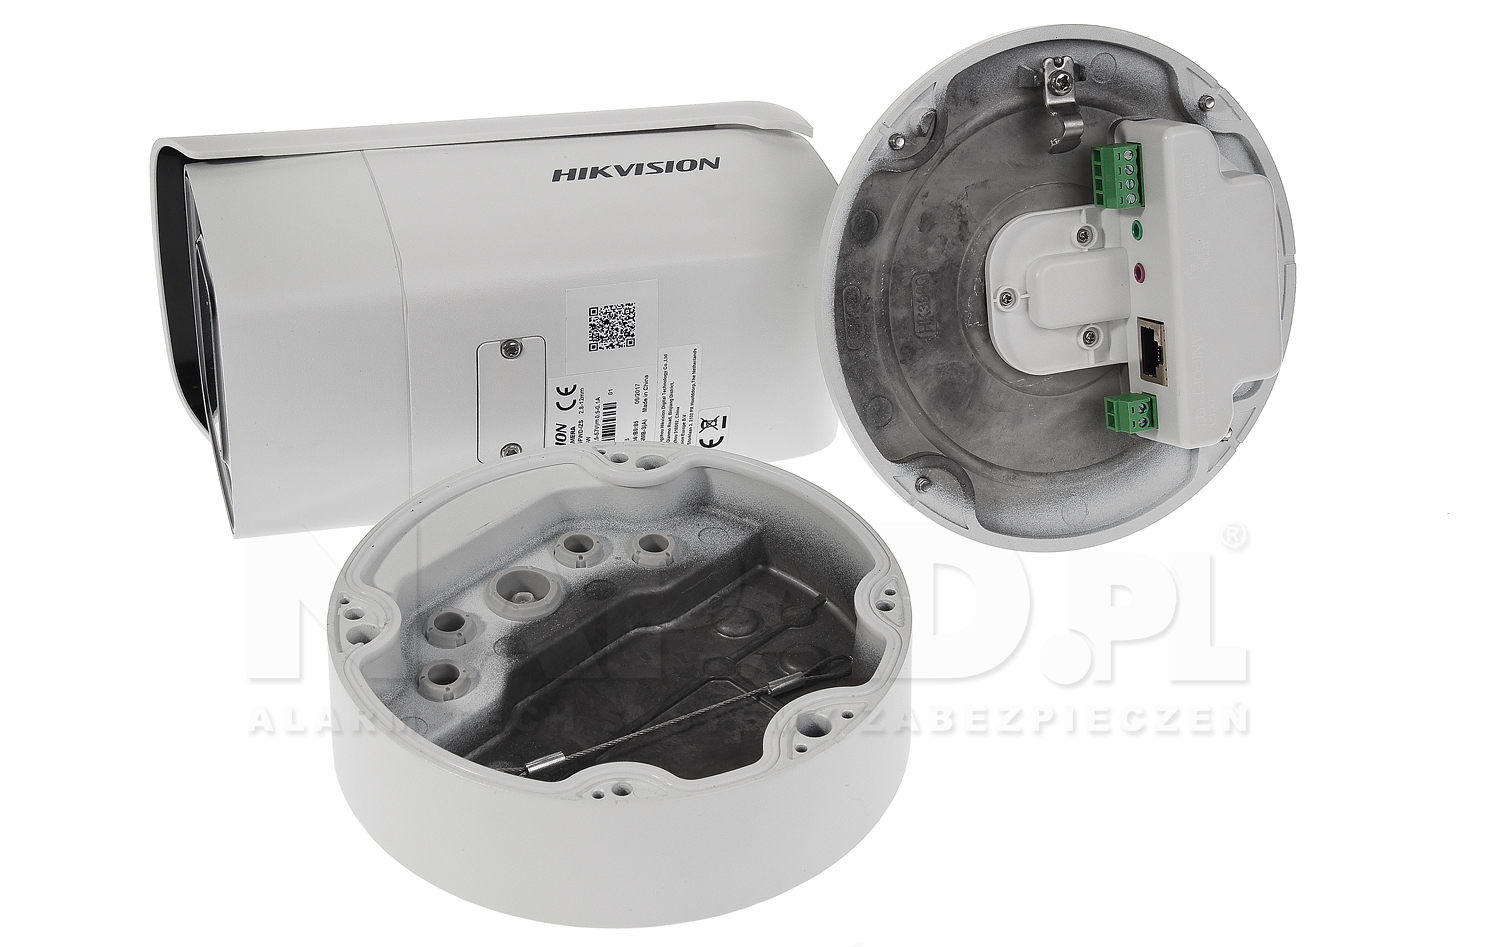 Kamera IP 2Mpx DS-2CD2625FWD-IZS